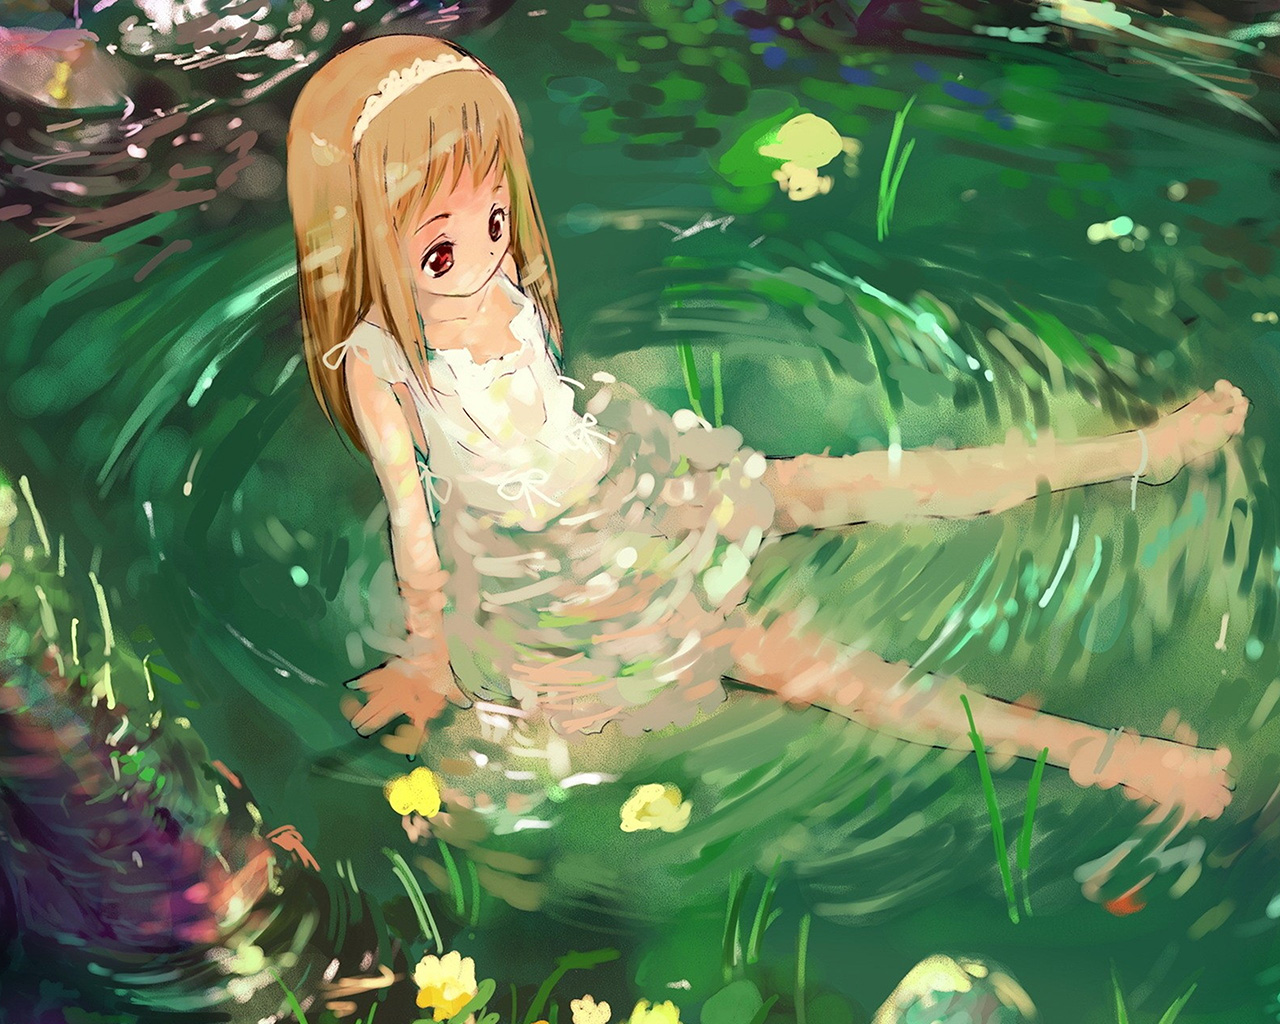 Pretty Fall Iphone Wallpapers Aq59 Girl Cute Anime Water Wallpaper